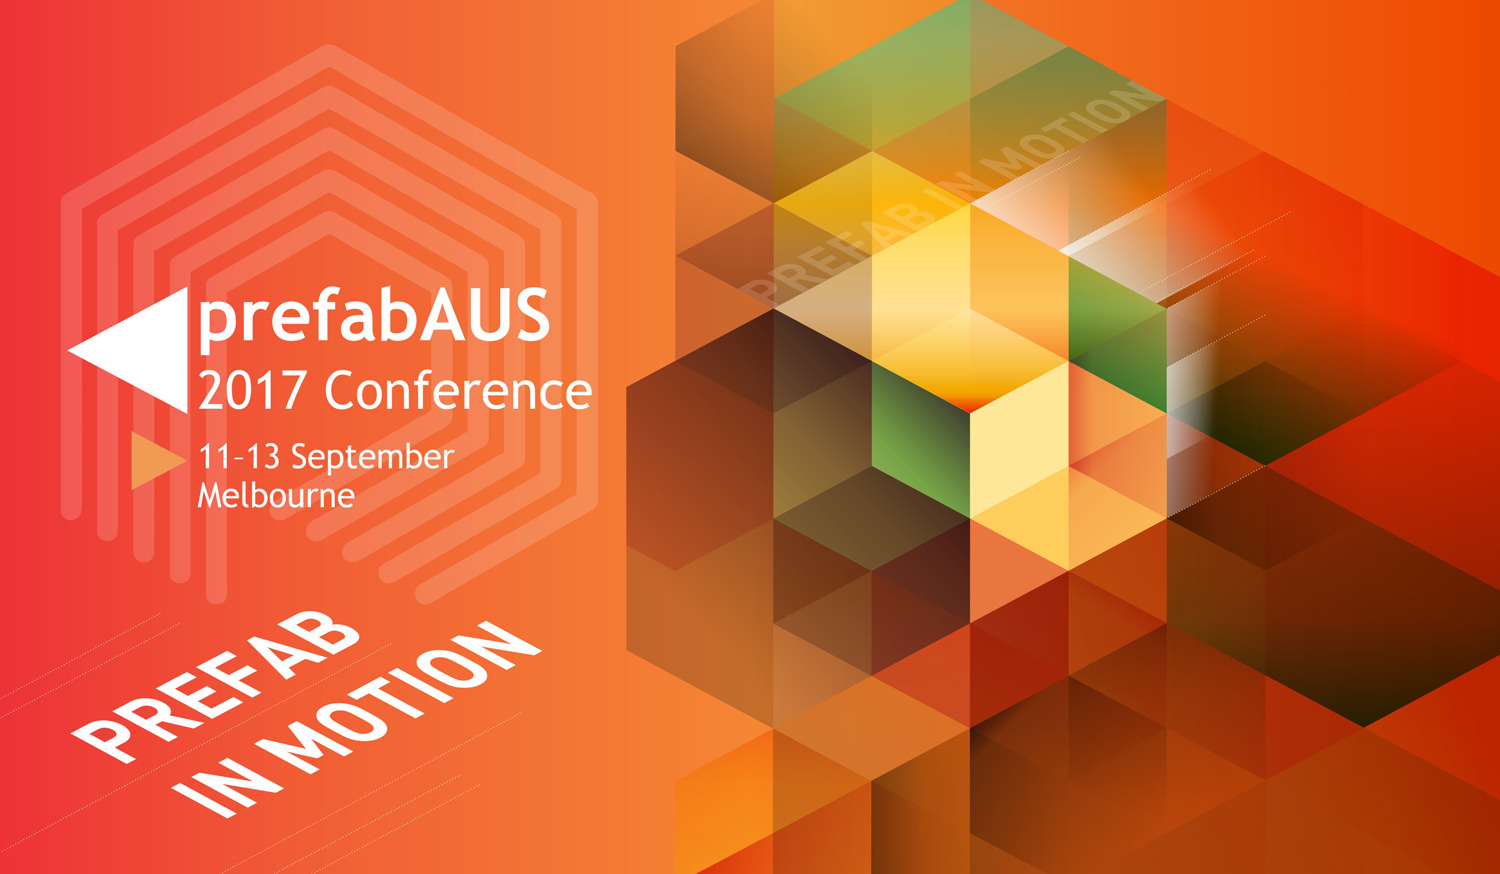 prefabAUS 2017 Conference